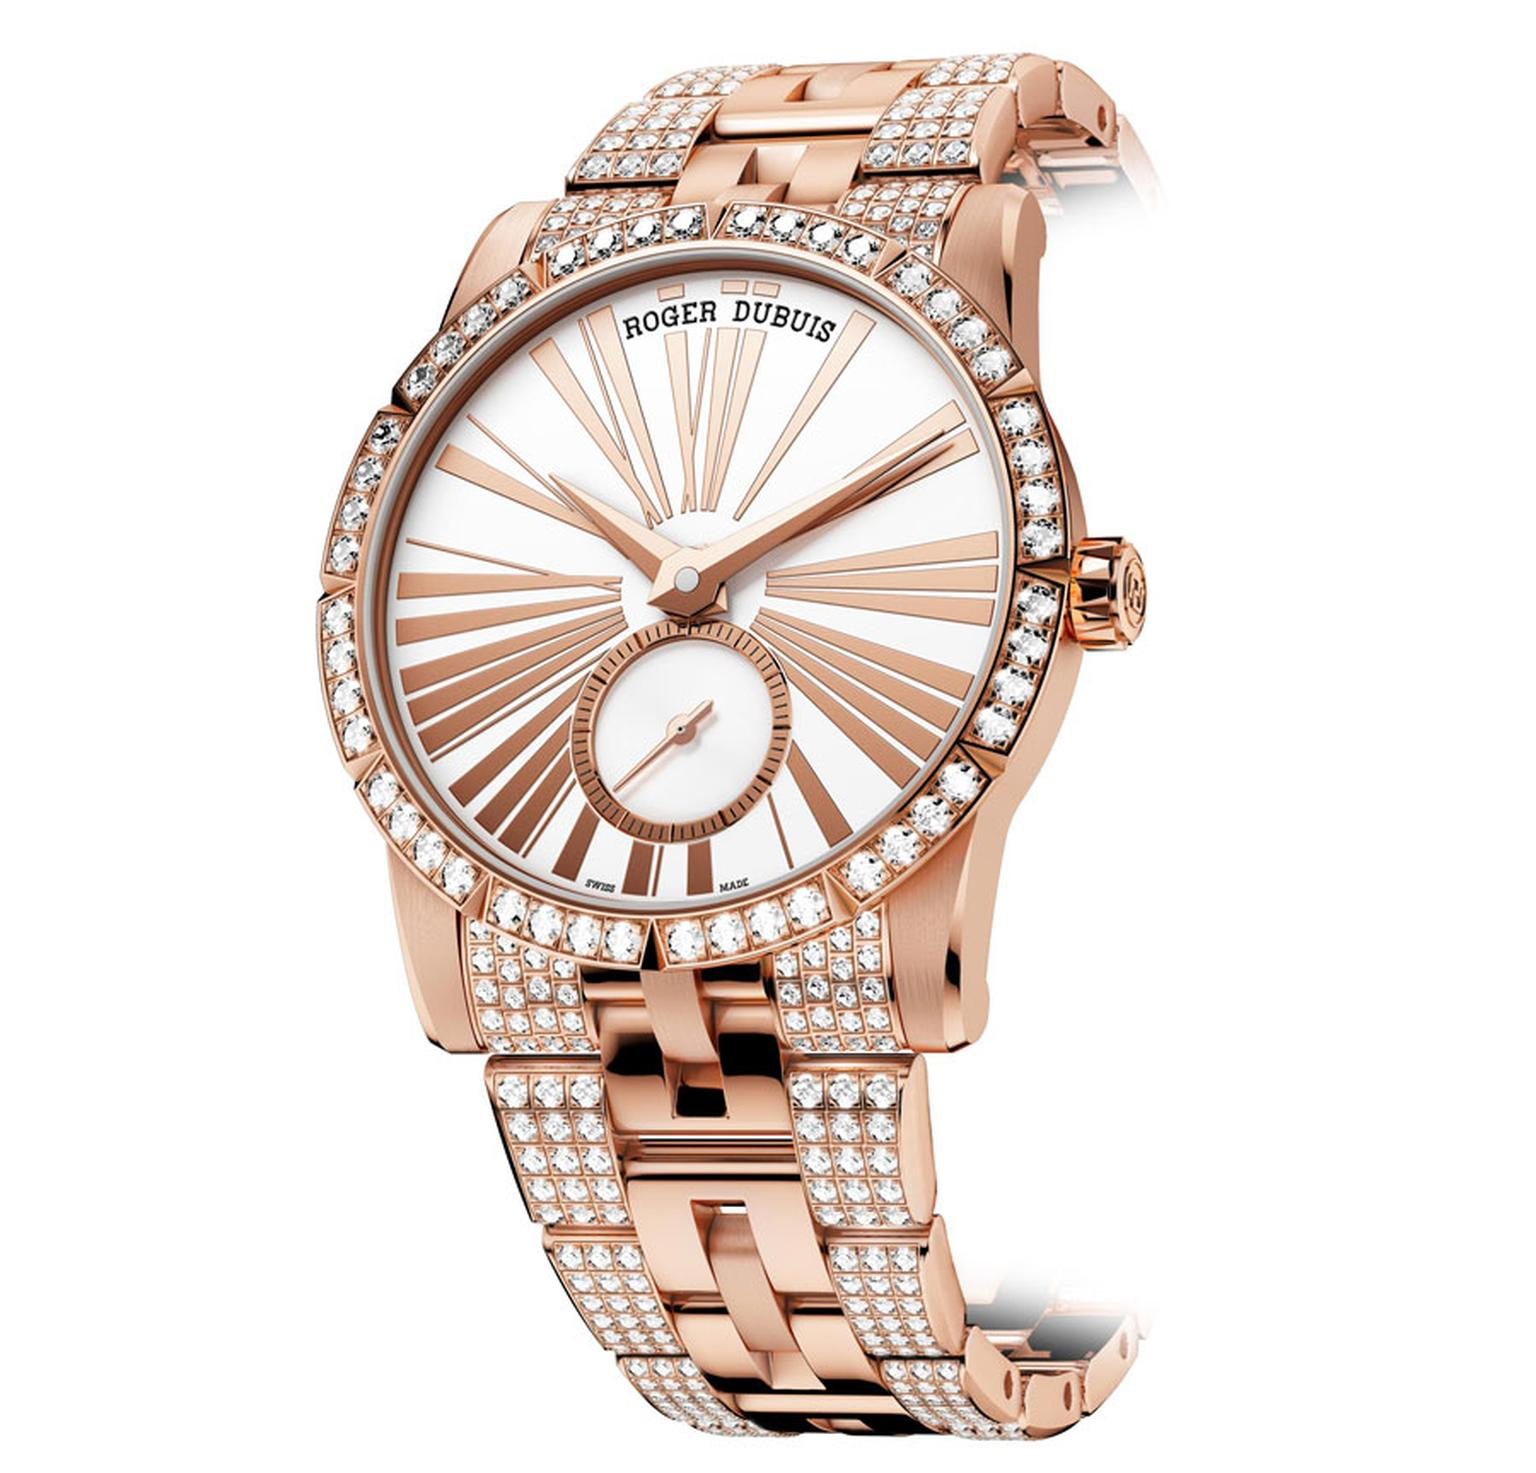 Roger-Dubuis-Excalibur-36-in-Pink-Gold